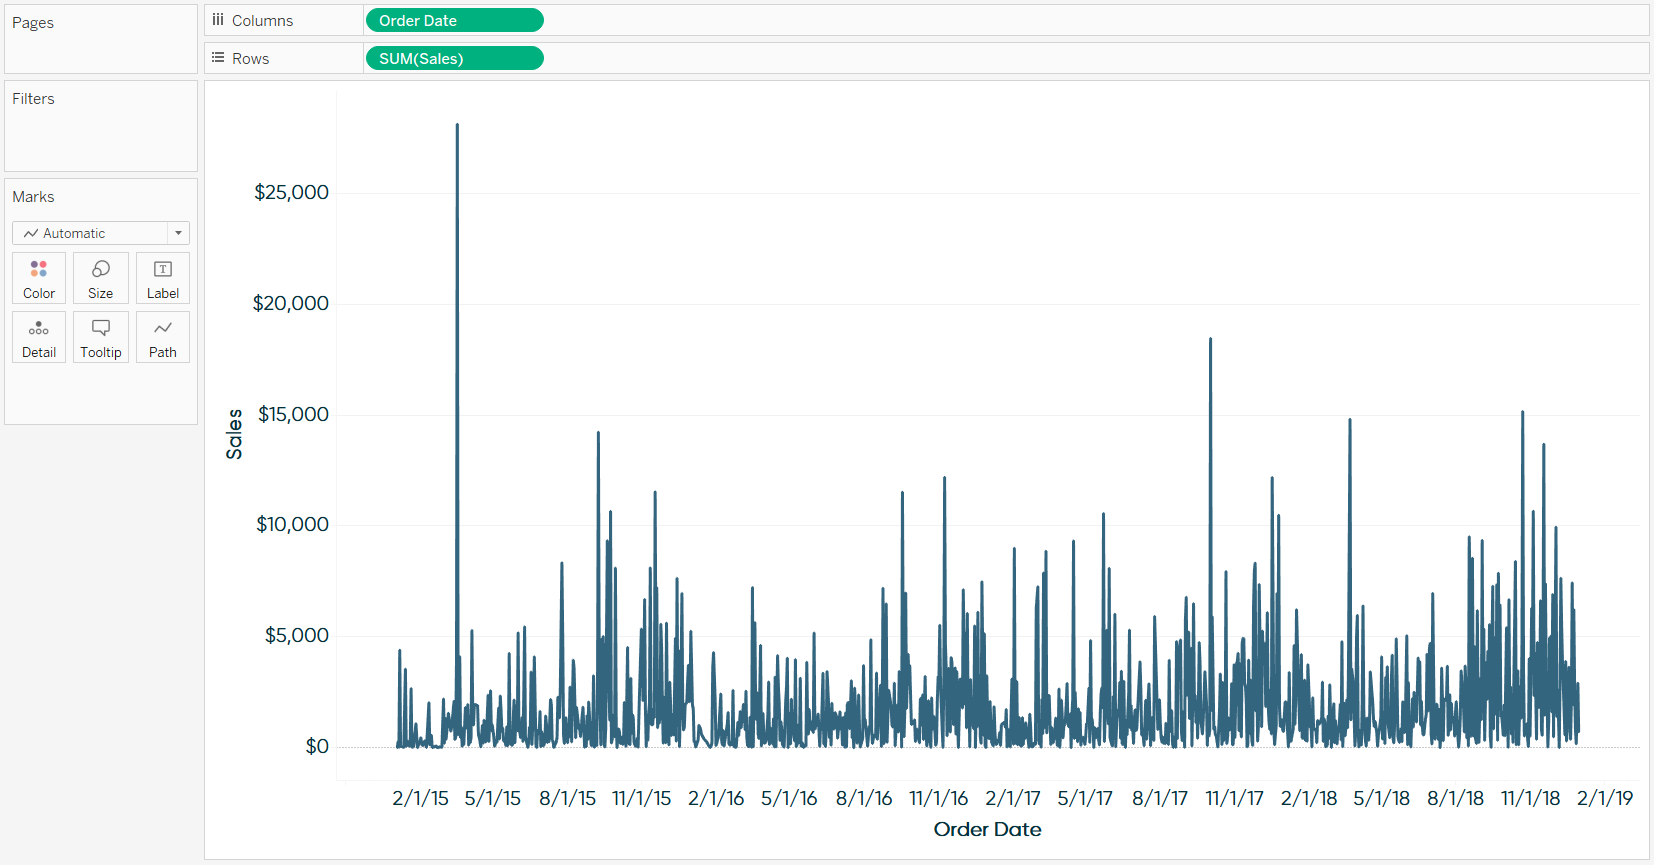 Sales by Continuous Day of Order Date Line Graph in Tableau